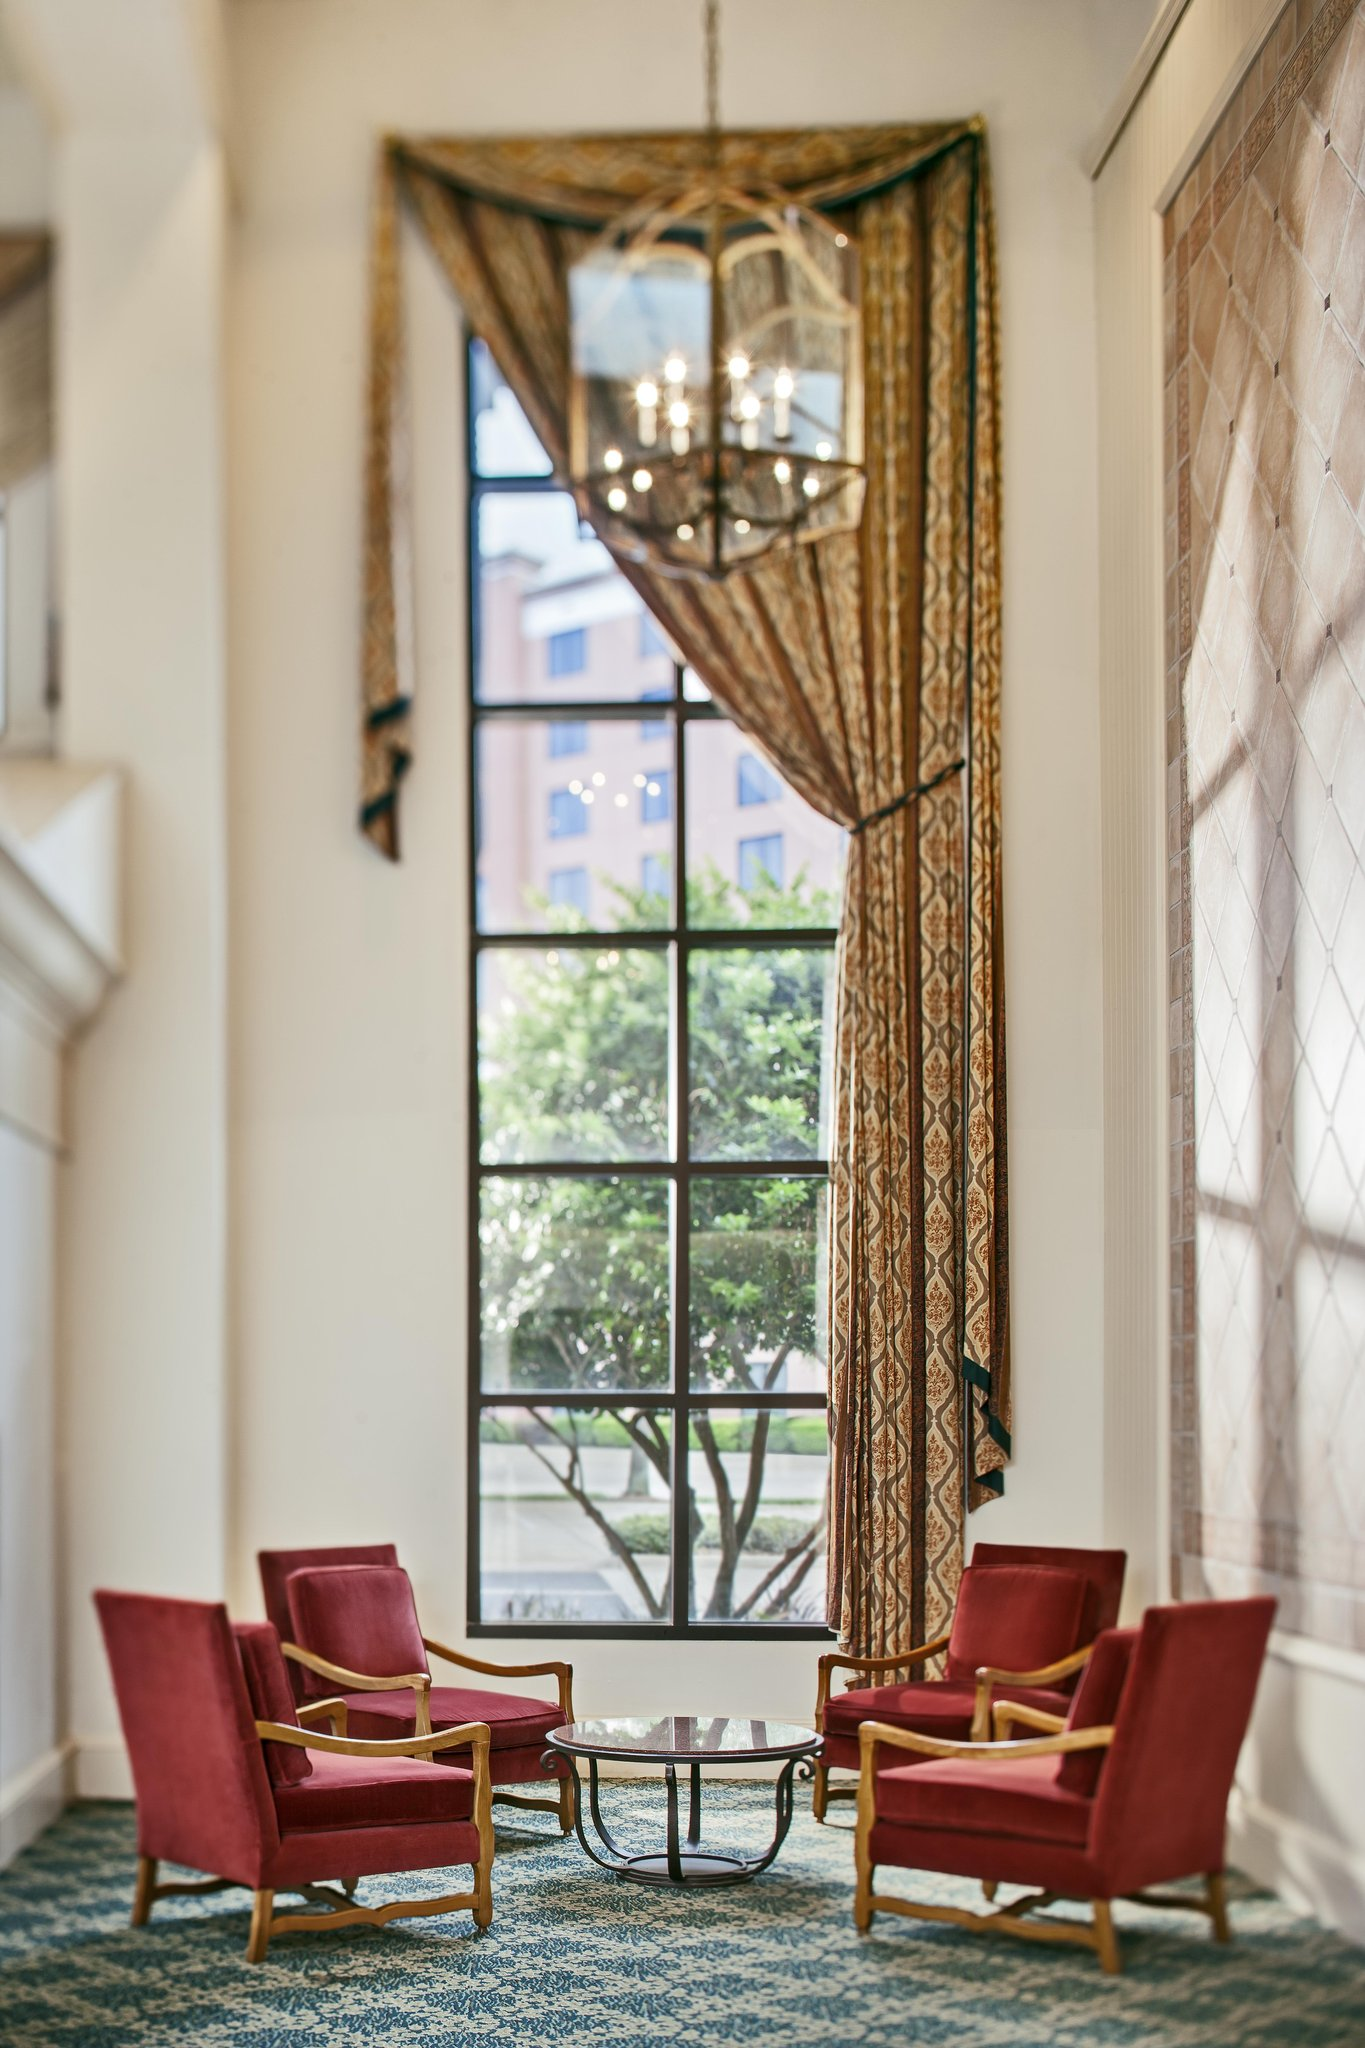 Foyer Seating Area Ideas : Entryway seating area images